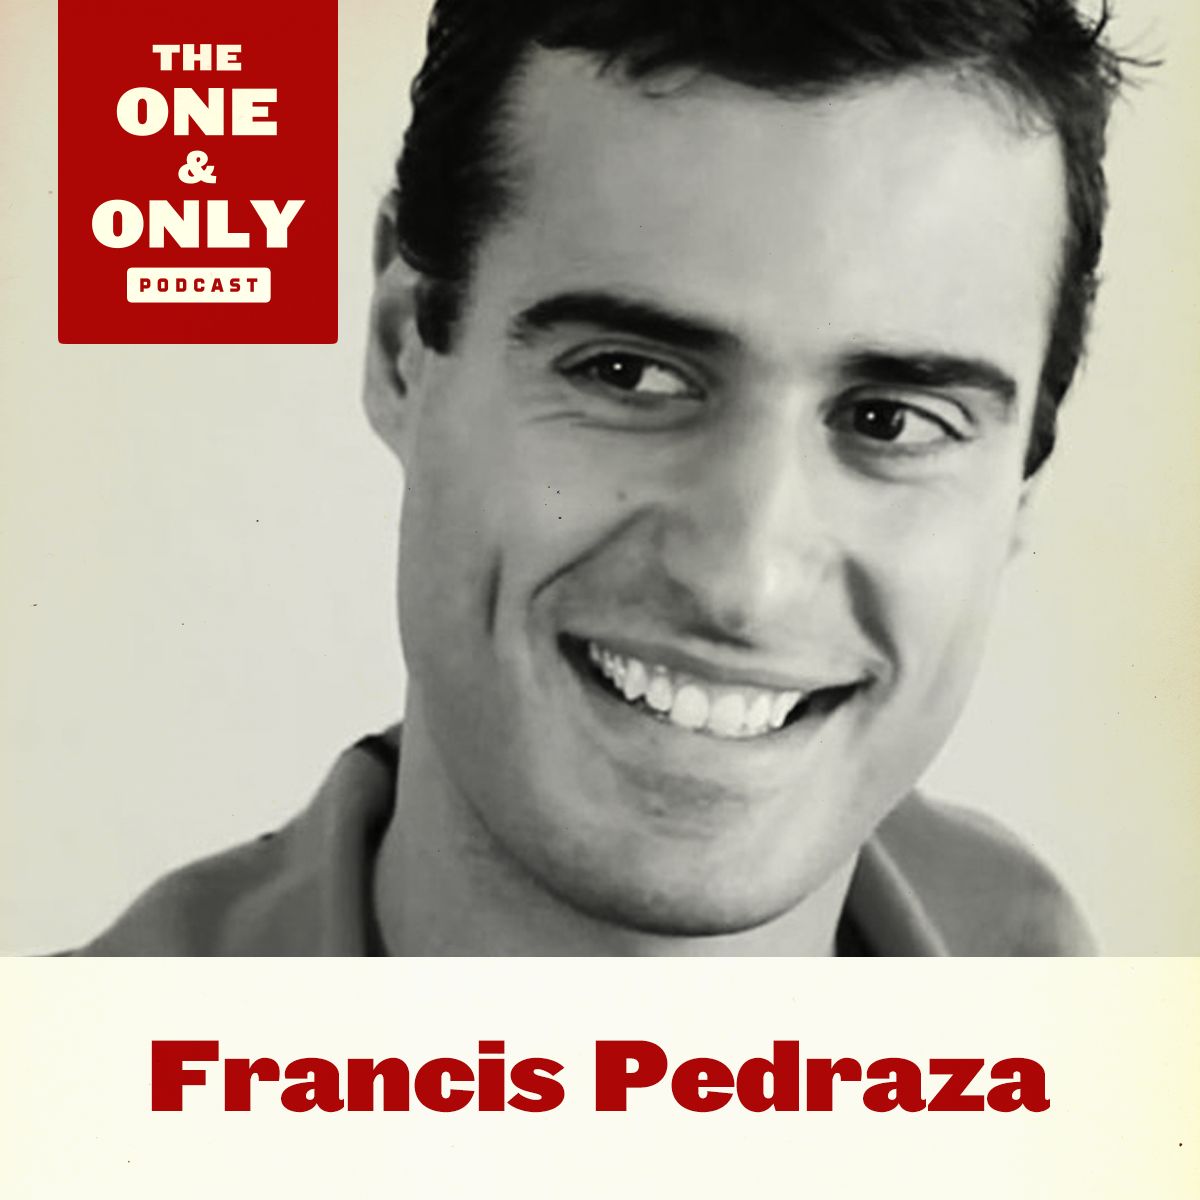 Francis Pedraza on The One & Only with Mark Shapiro